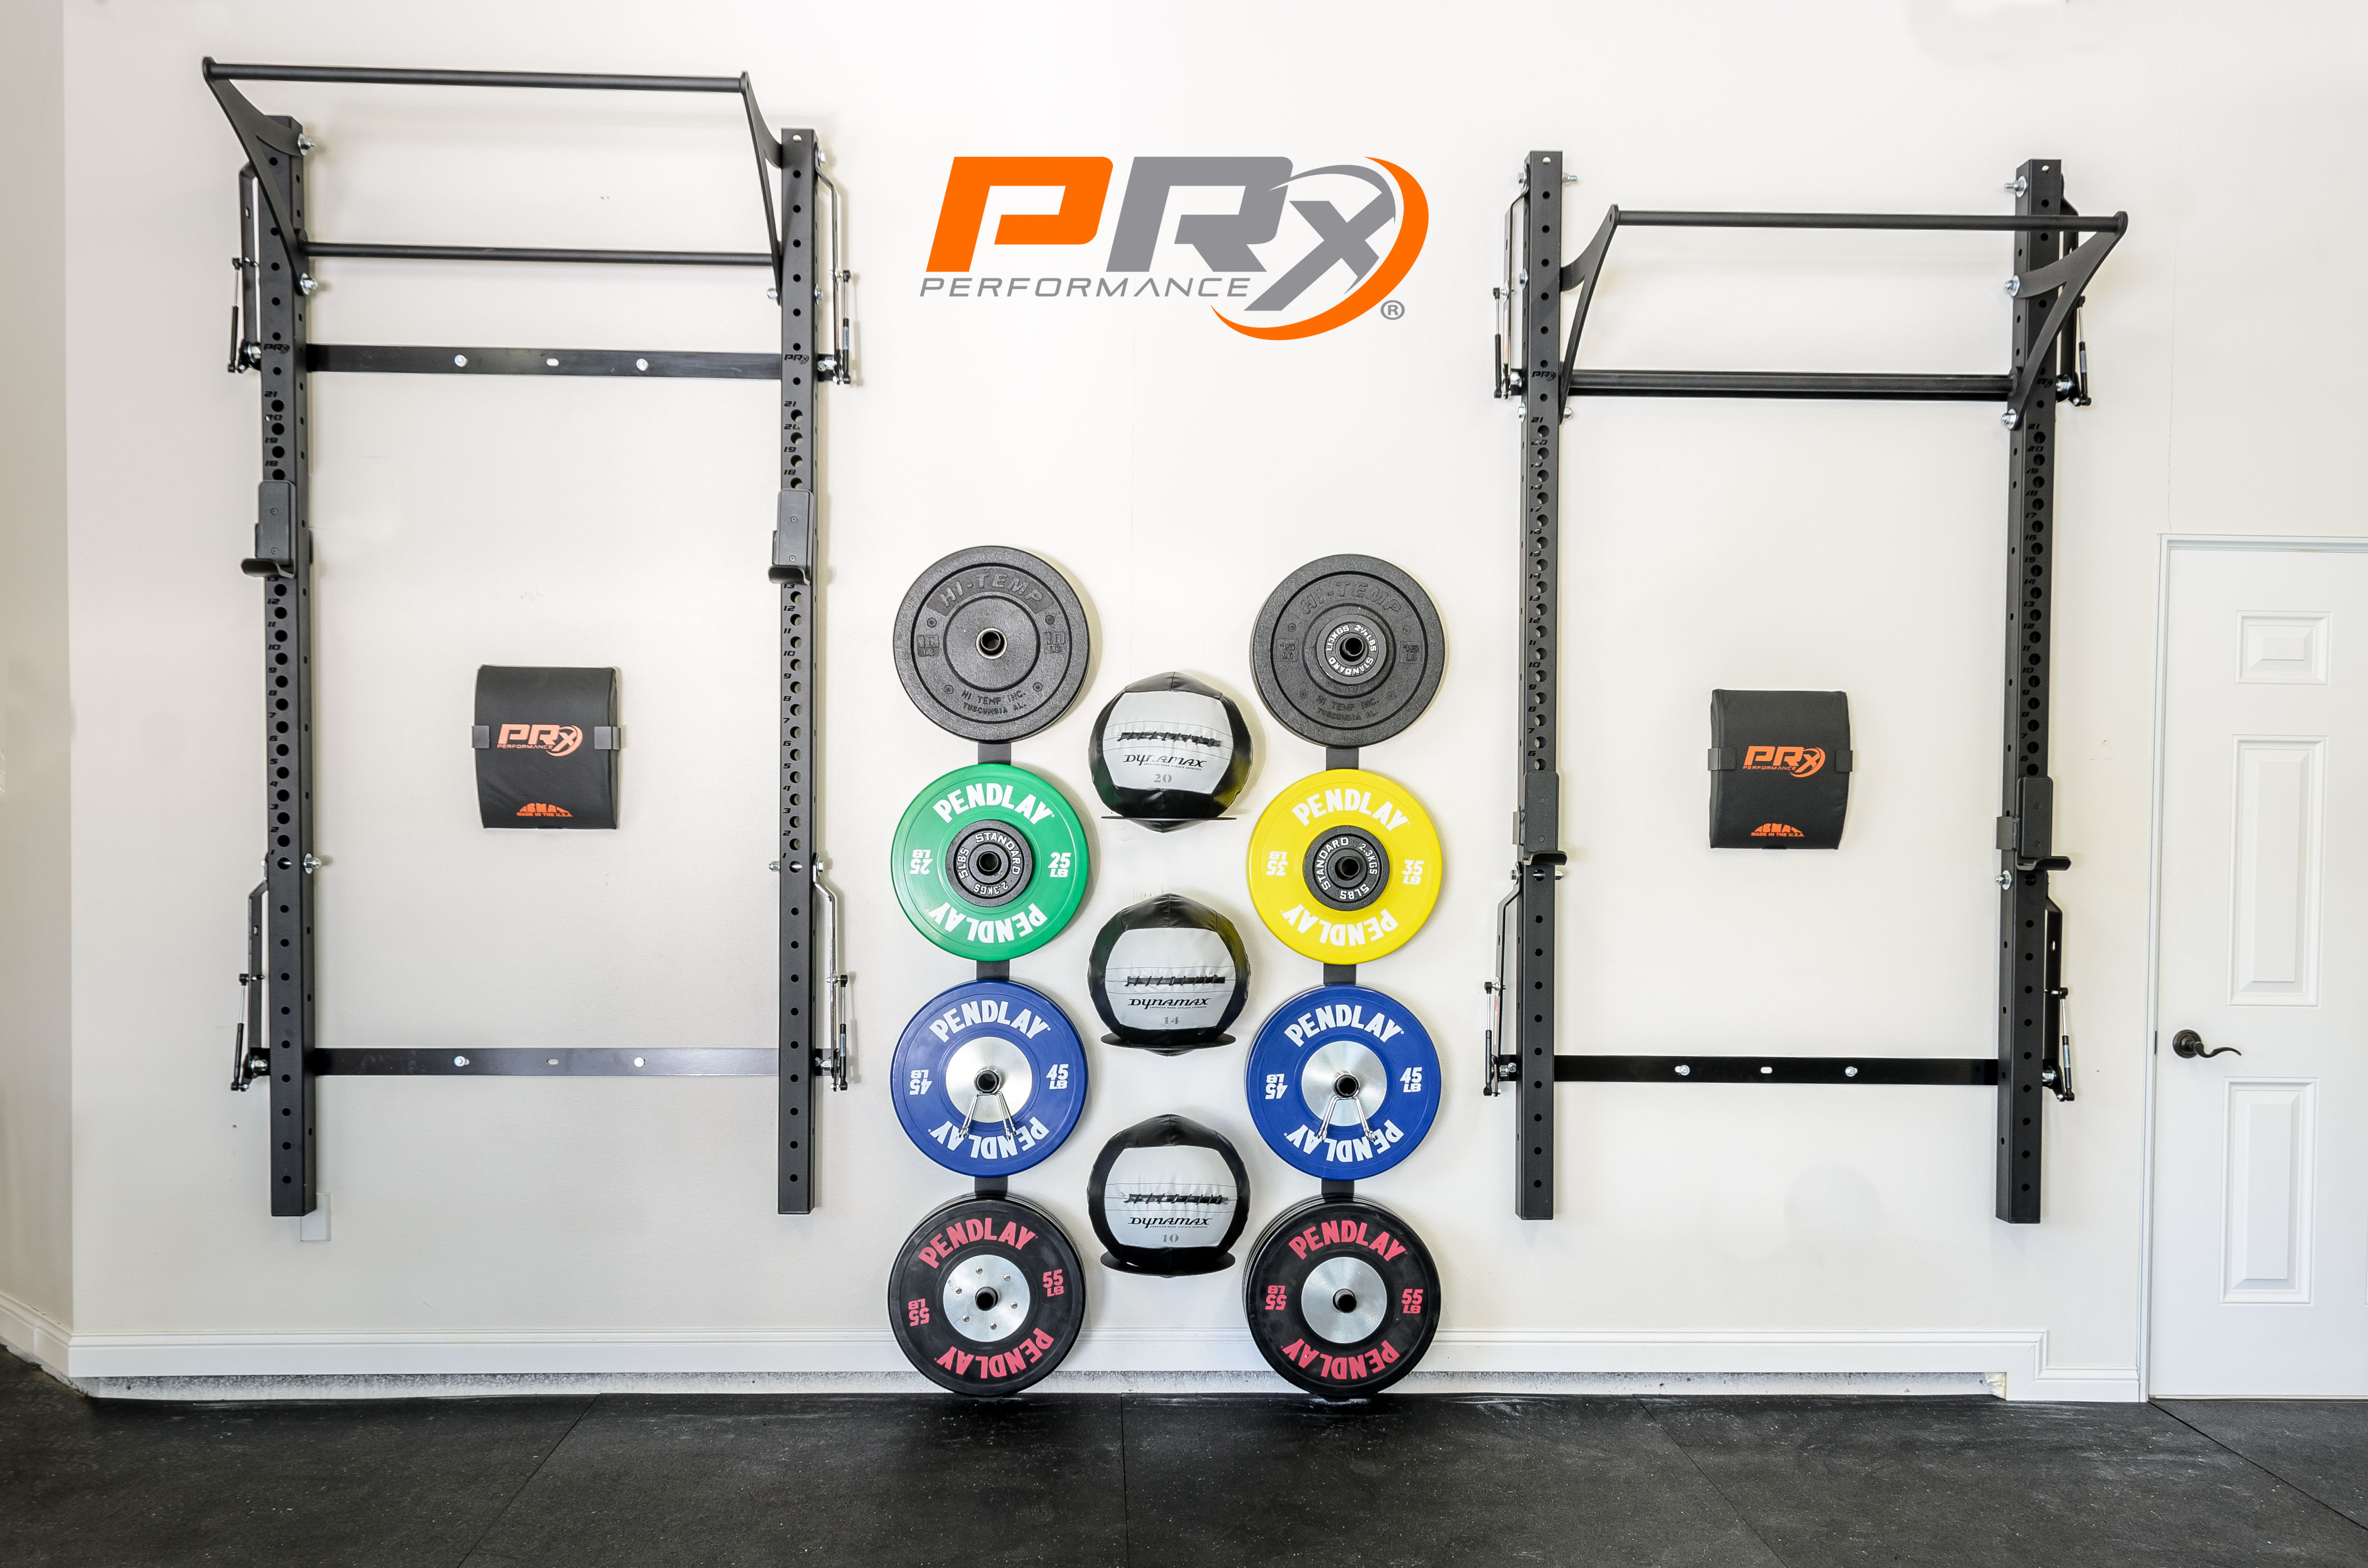 bench with the itm doing ideal wall exercises power other titan limited for t back anyone series and creative is folding squat fold collapsible deep start pressing mounted space squats fitness rack dips